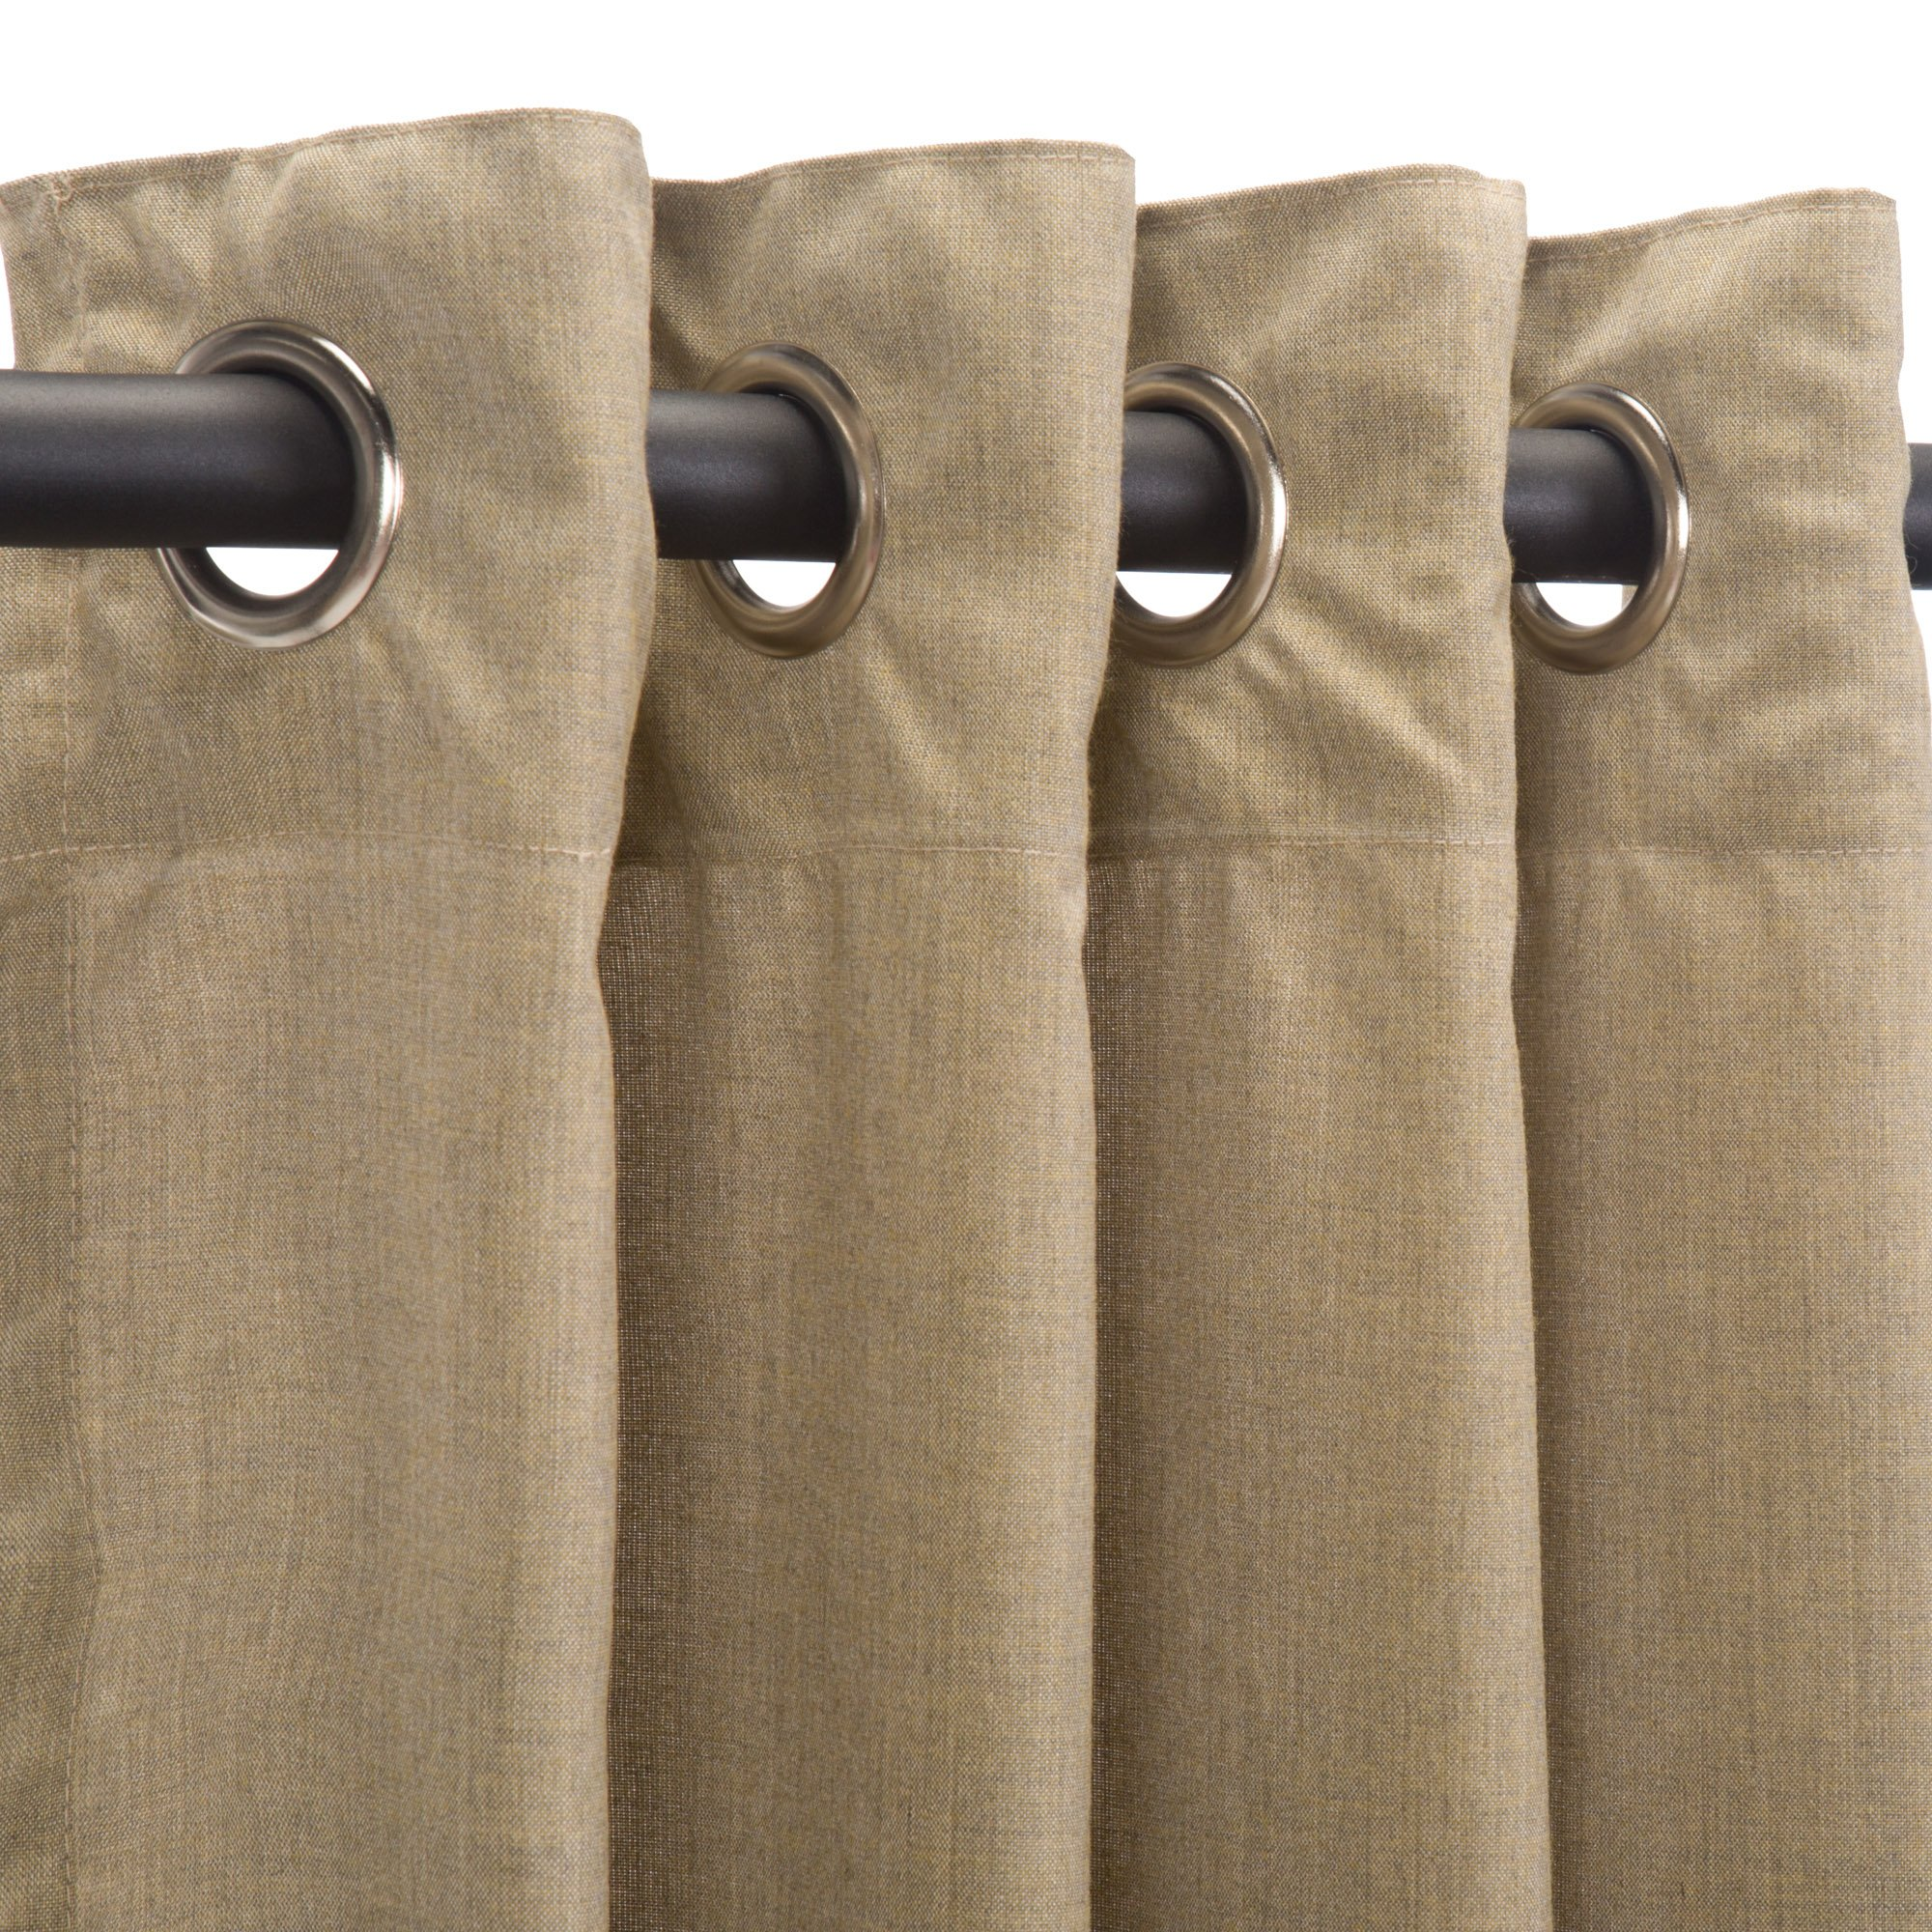 Sunbrella Outdoor Curtain Panel, Nickel Grommet Top, 50 by 120 Inch, Cast Tinsel (Available in Multiple Colors and Sizes) Includes Custom Storage Bag; Perfect For a Patio, Porch, Gazebo, or Pergola